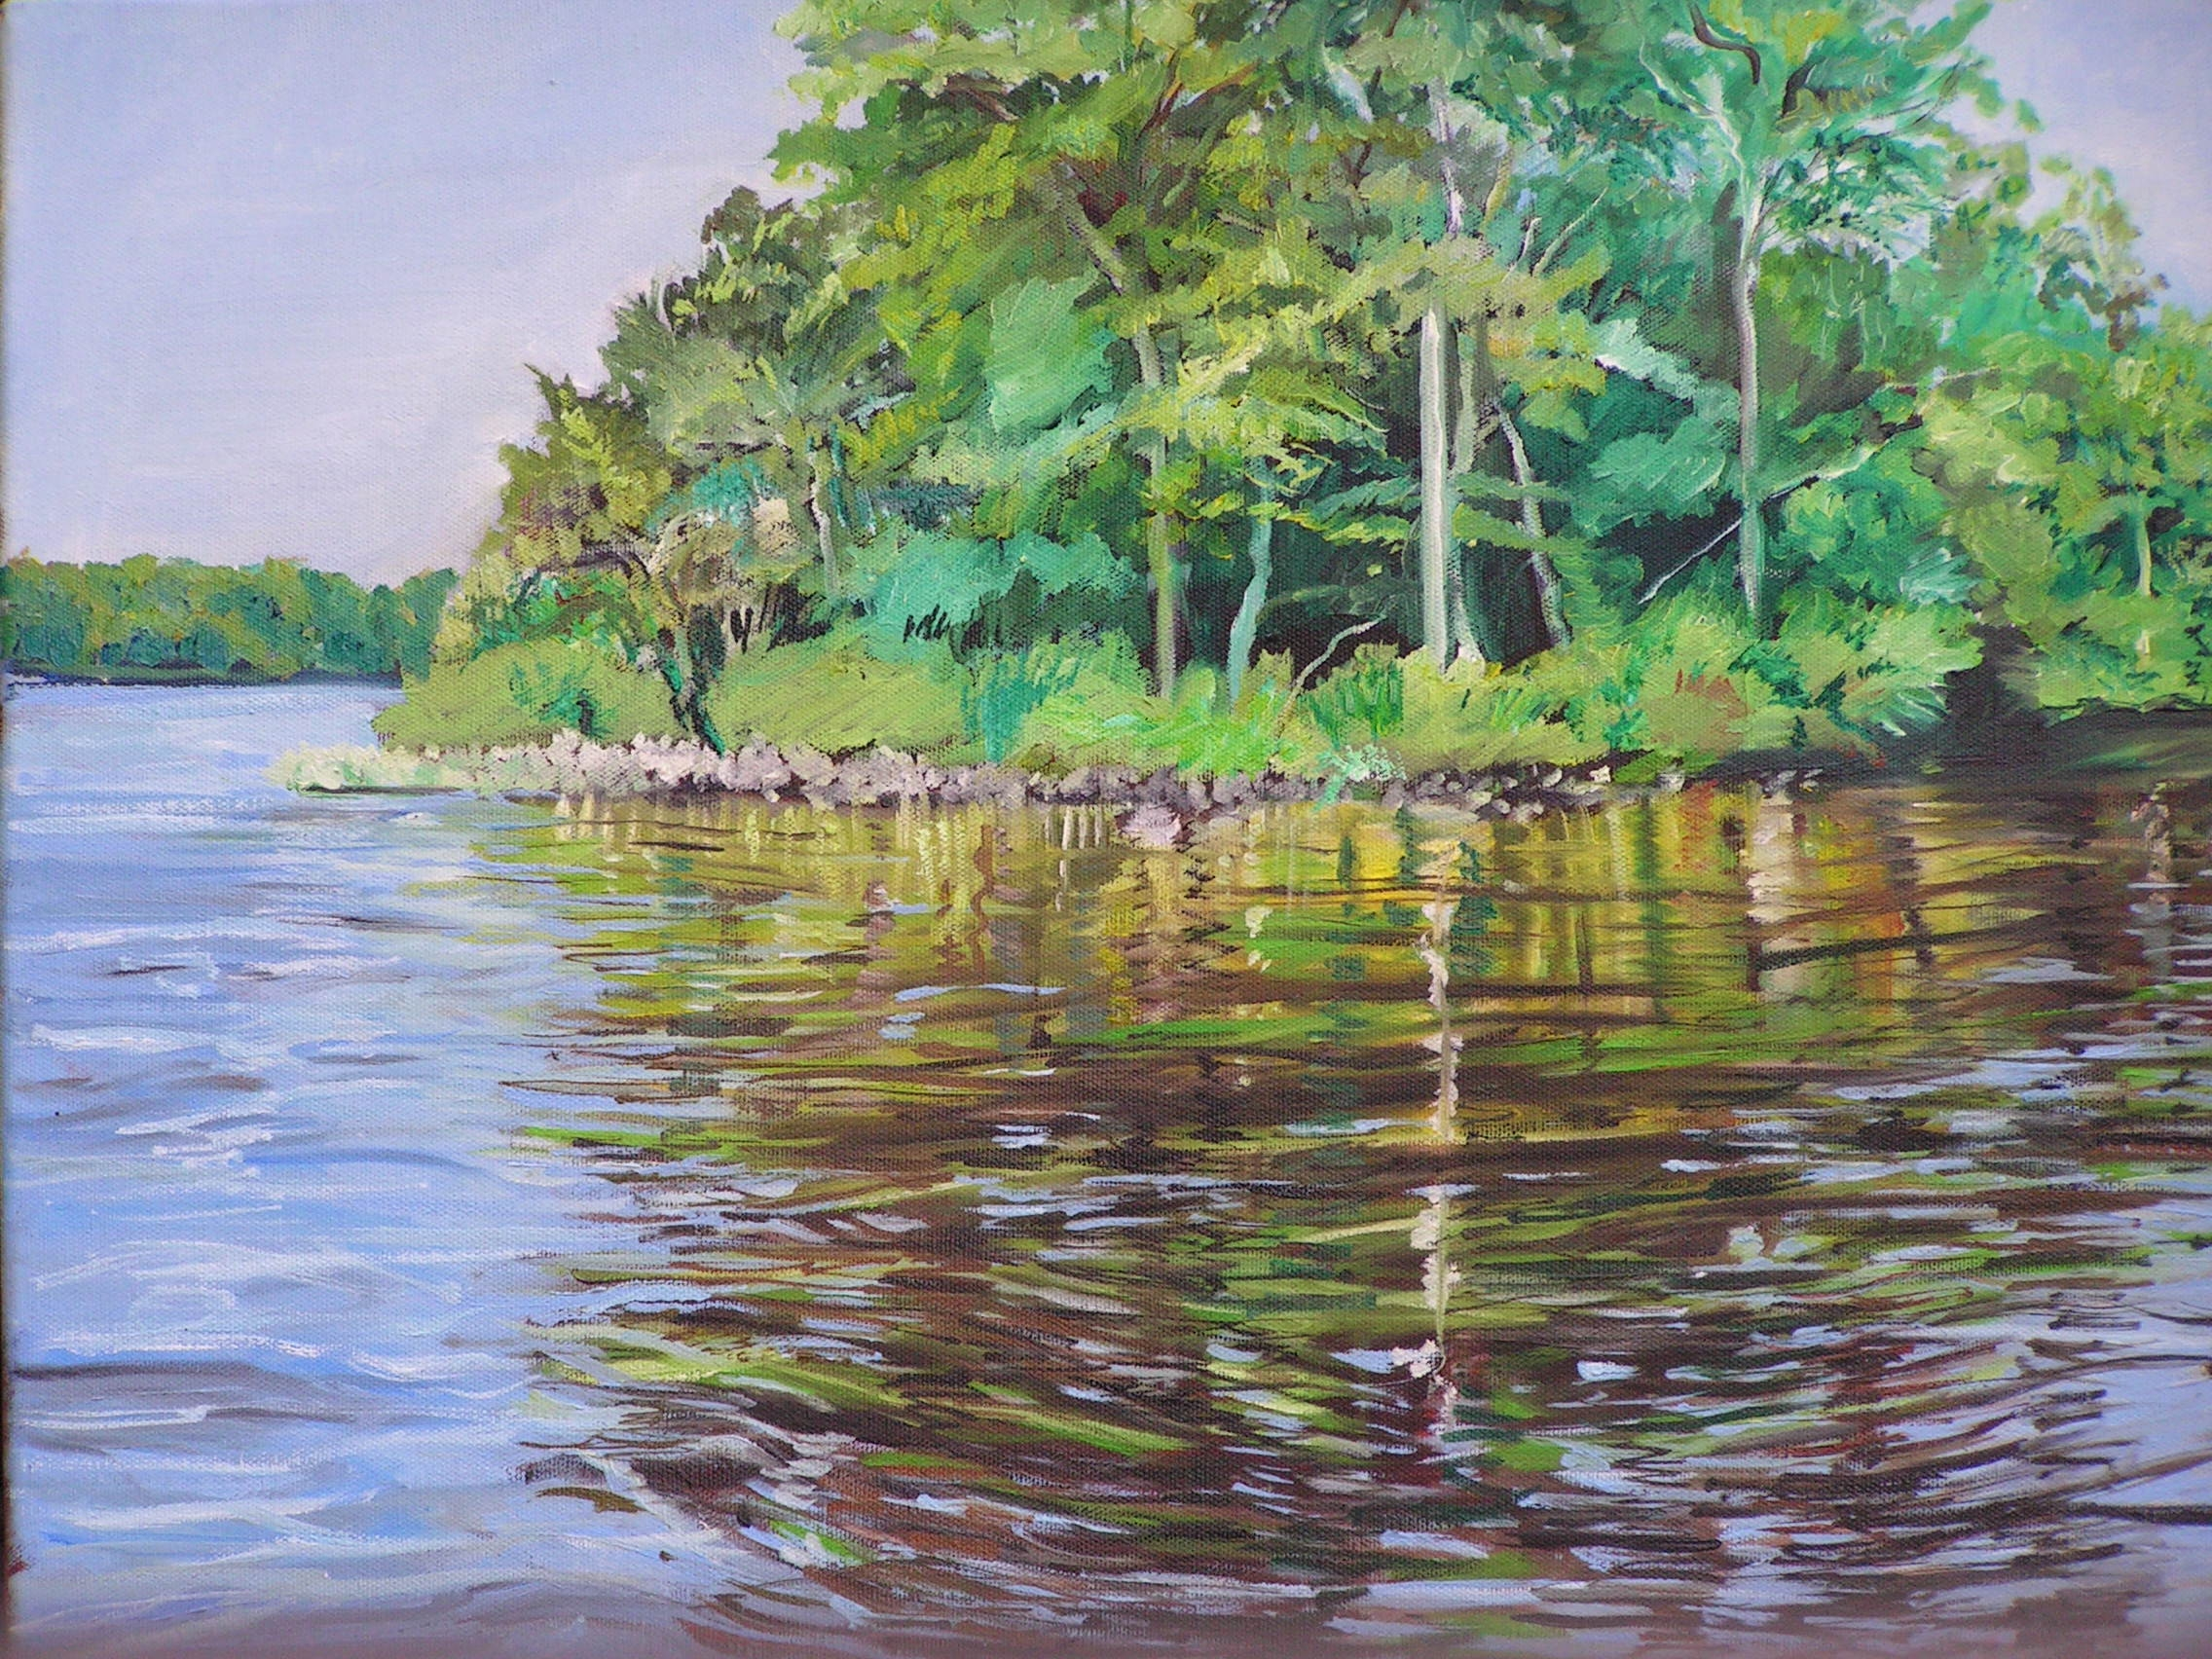 Pocomoke River 16x20 oil on canvas